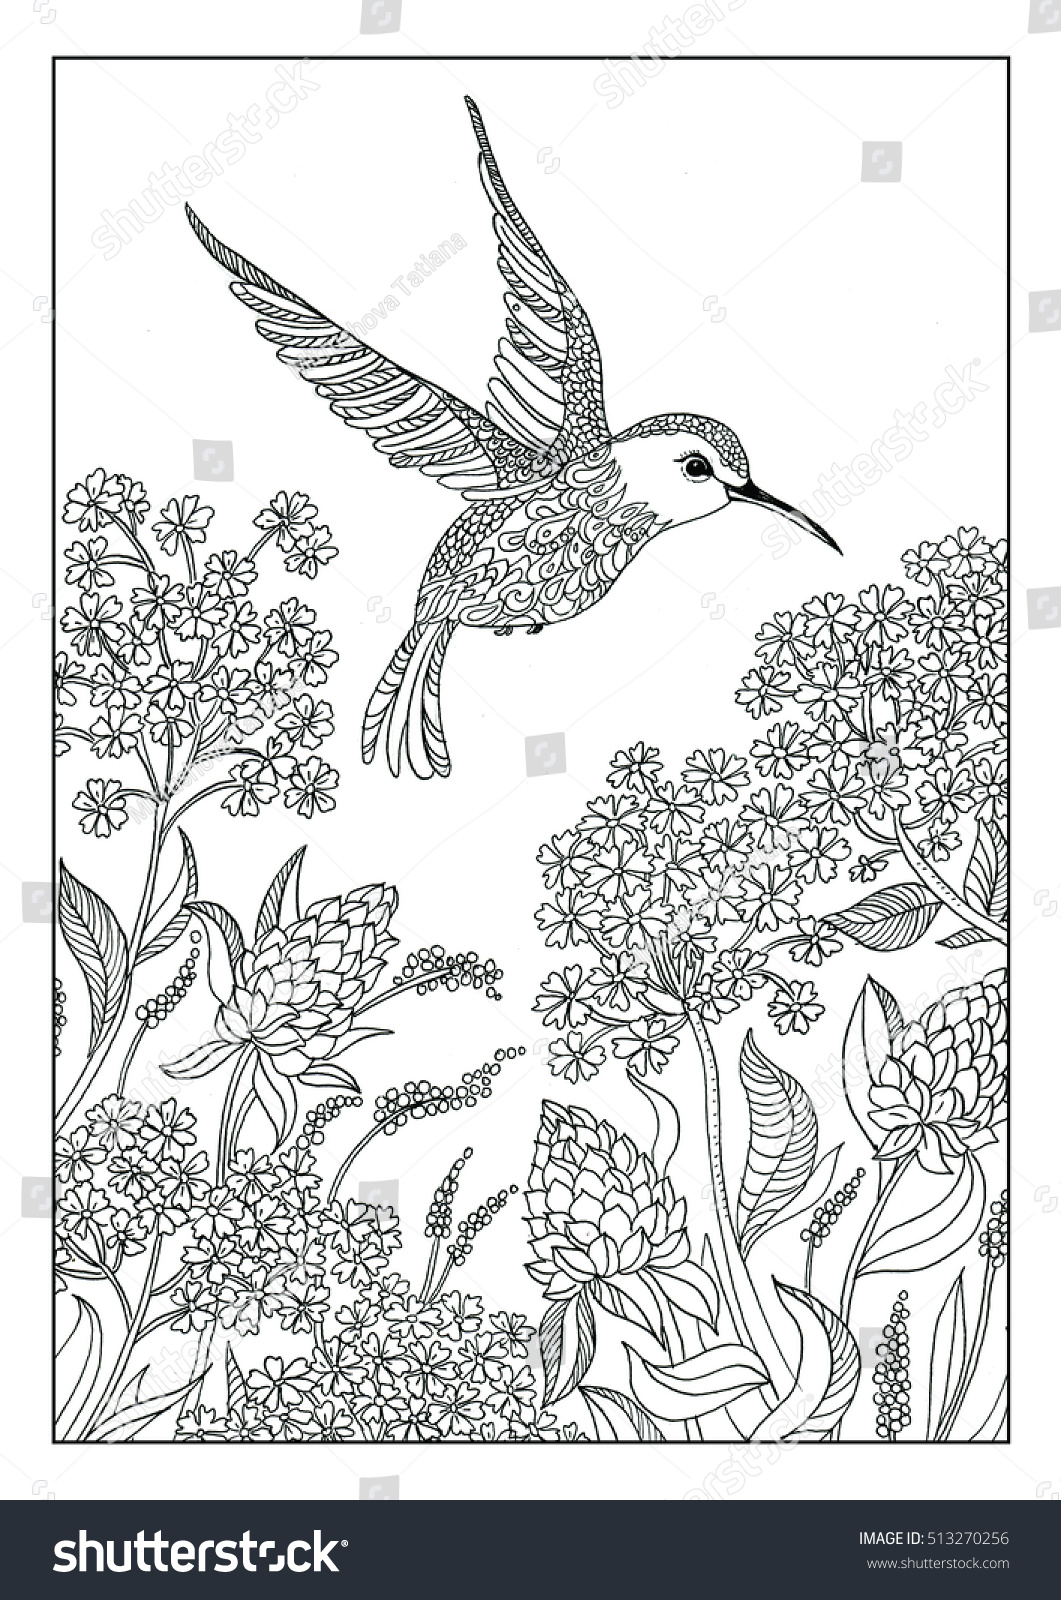 Coloring Book. Page For Coloring For Adults And Children .bird Hummingbird  And Exotic Flowers